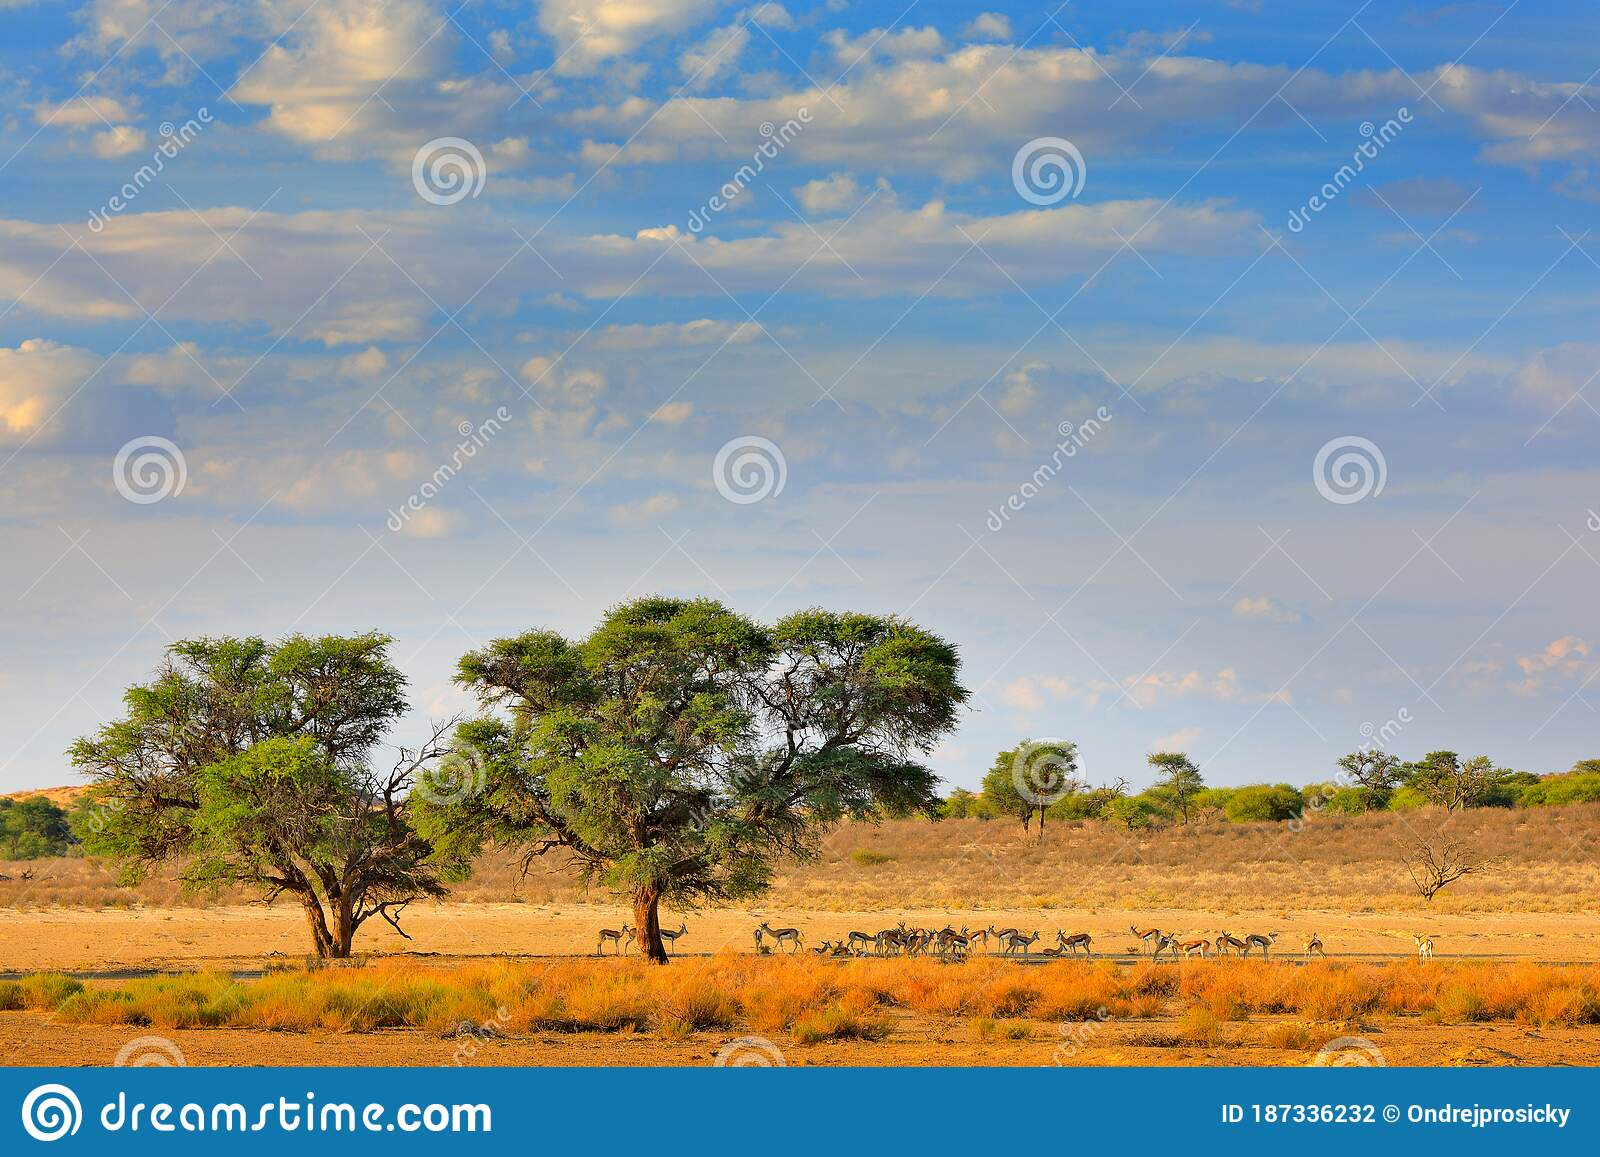 Kgalagadi Landscape, Animals And Trees Near The Water Hole ...